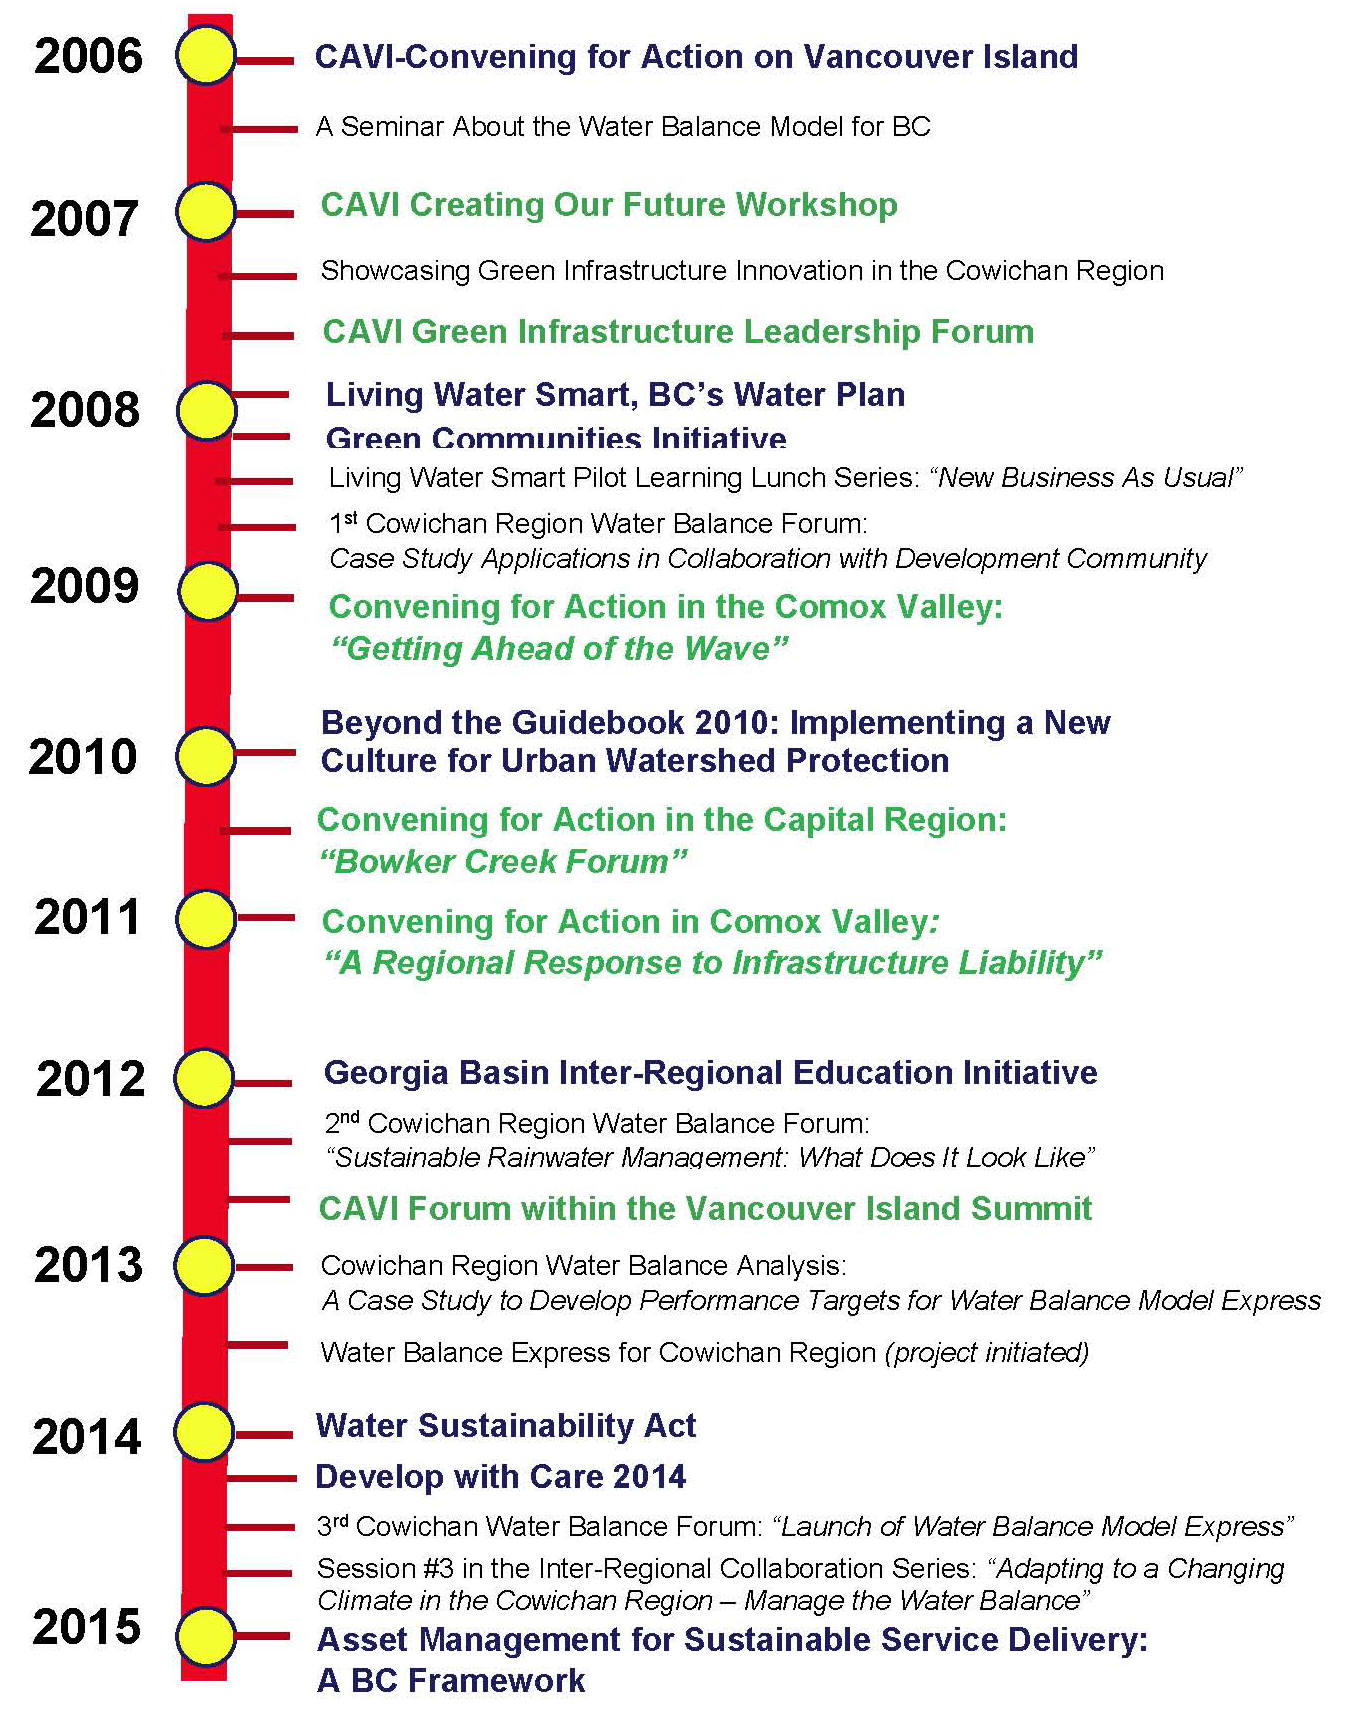 BYGB2015_Timeline_Cowichan_May-2015_rev1